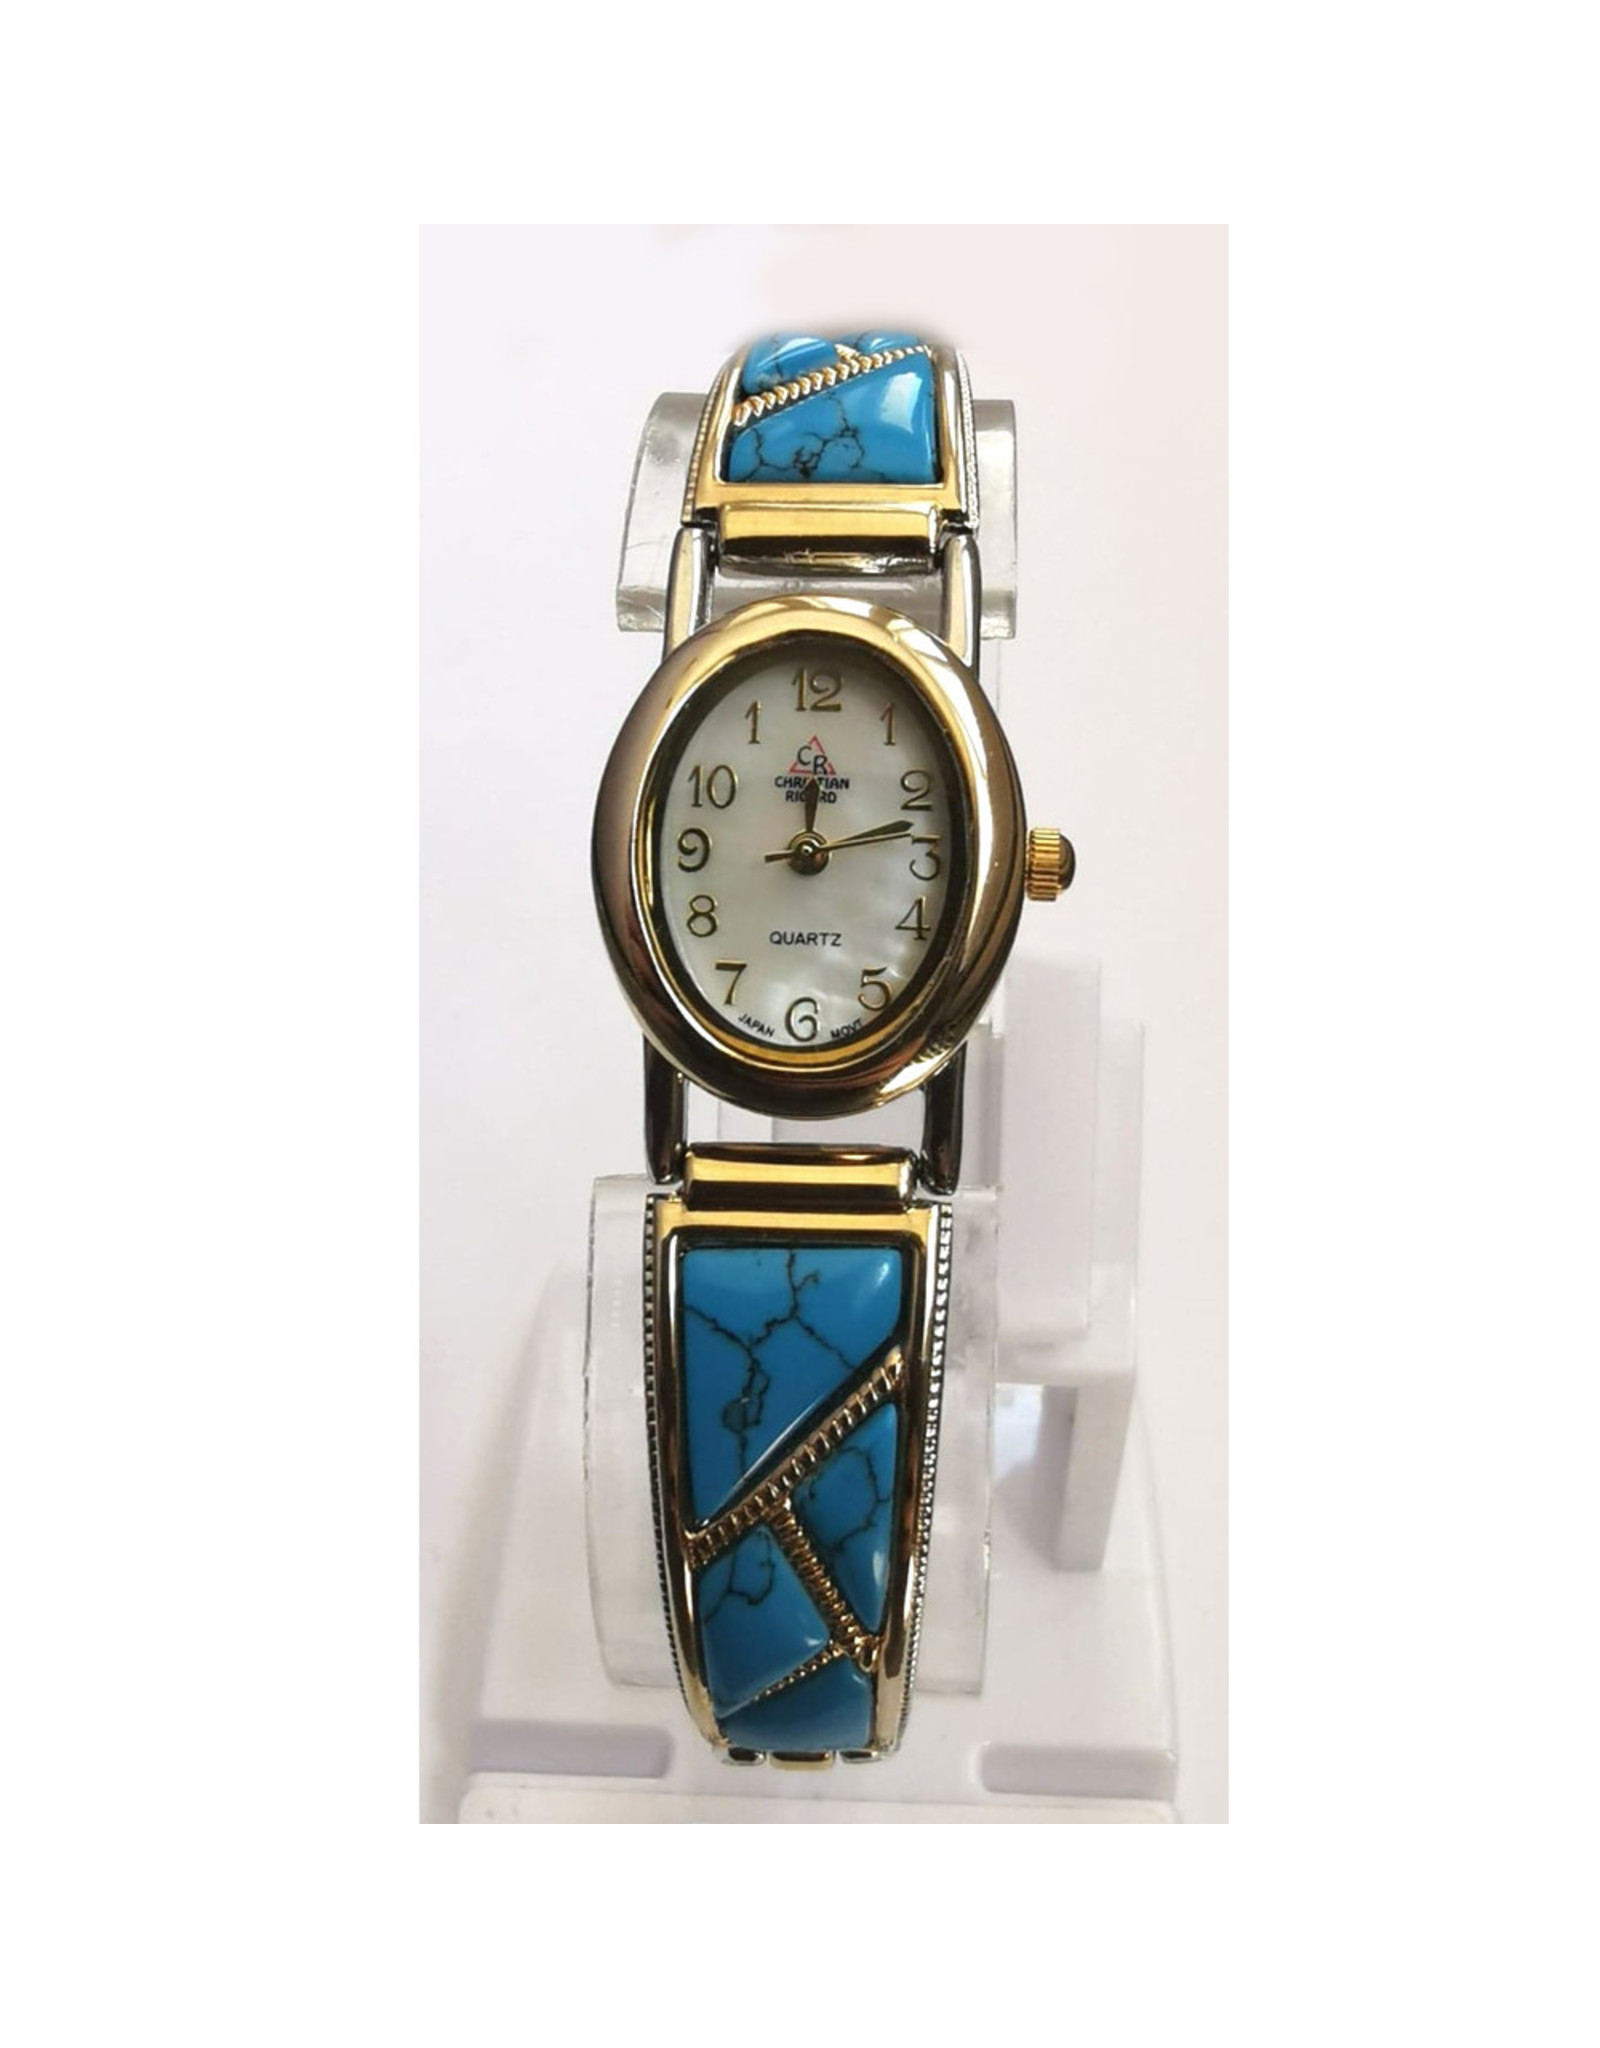 Christian Ricard Turquoise ovale deux tons